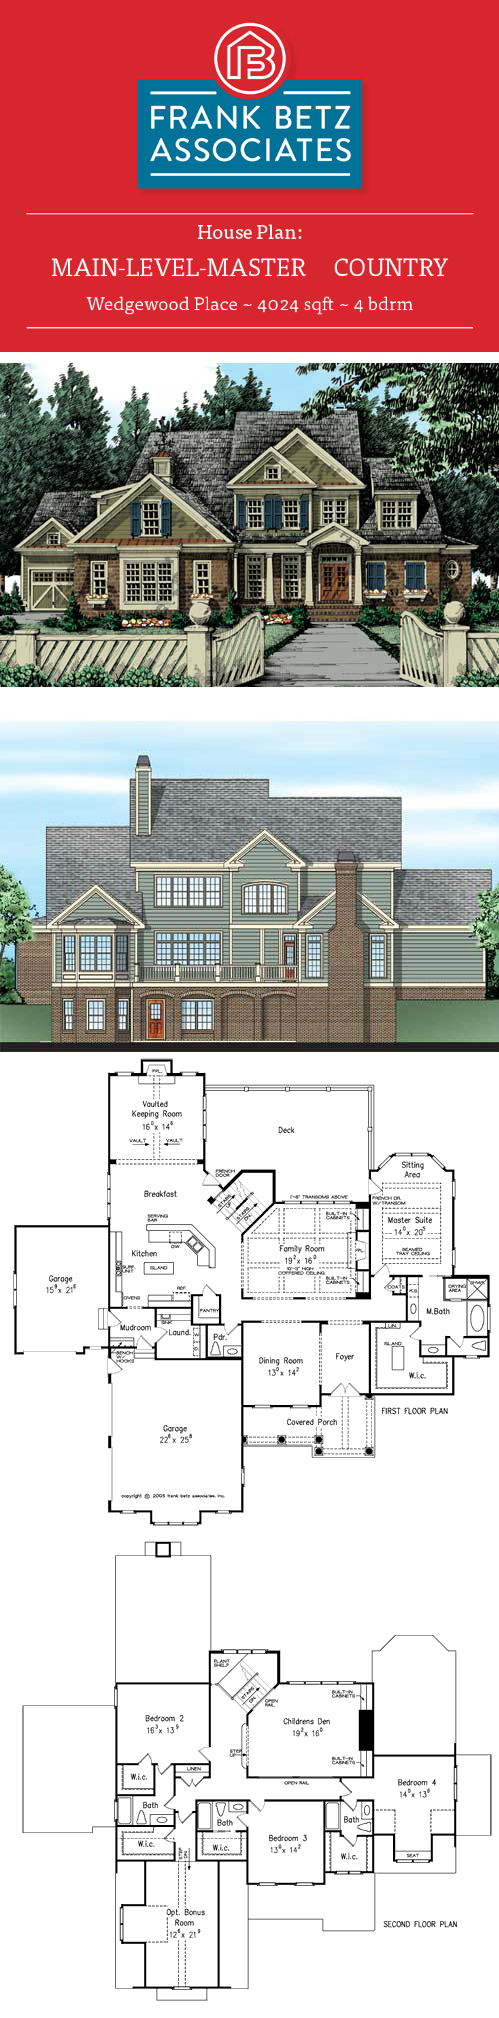 Betz house plans with large kitchen frank house plans designs ideas - Wedgeood Place 4024 Sqft 4 Bdrm American Country Style House Plan Design By Frank